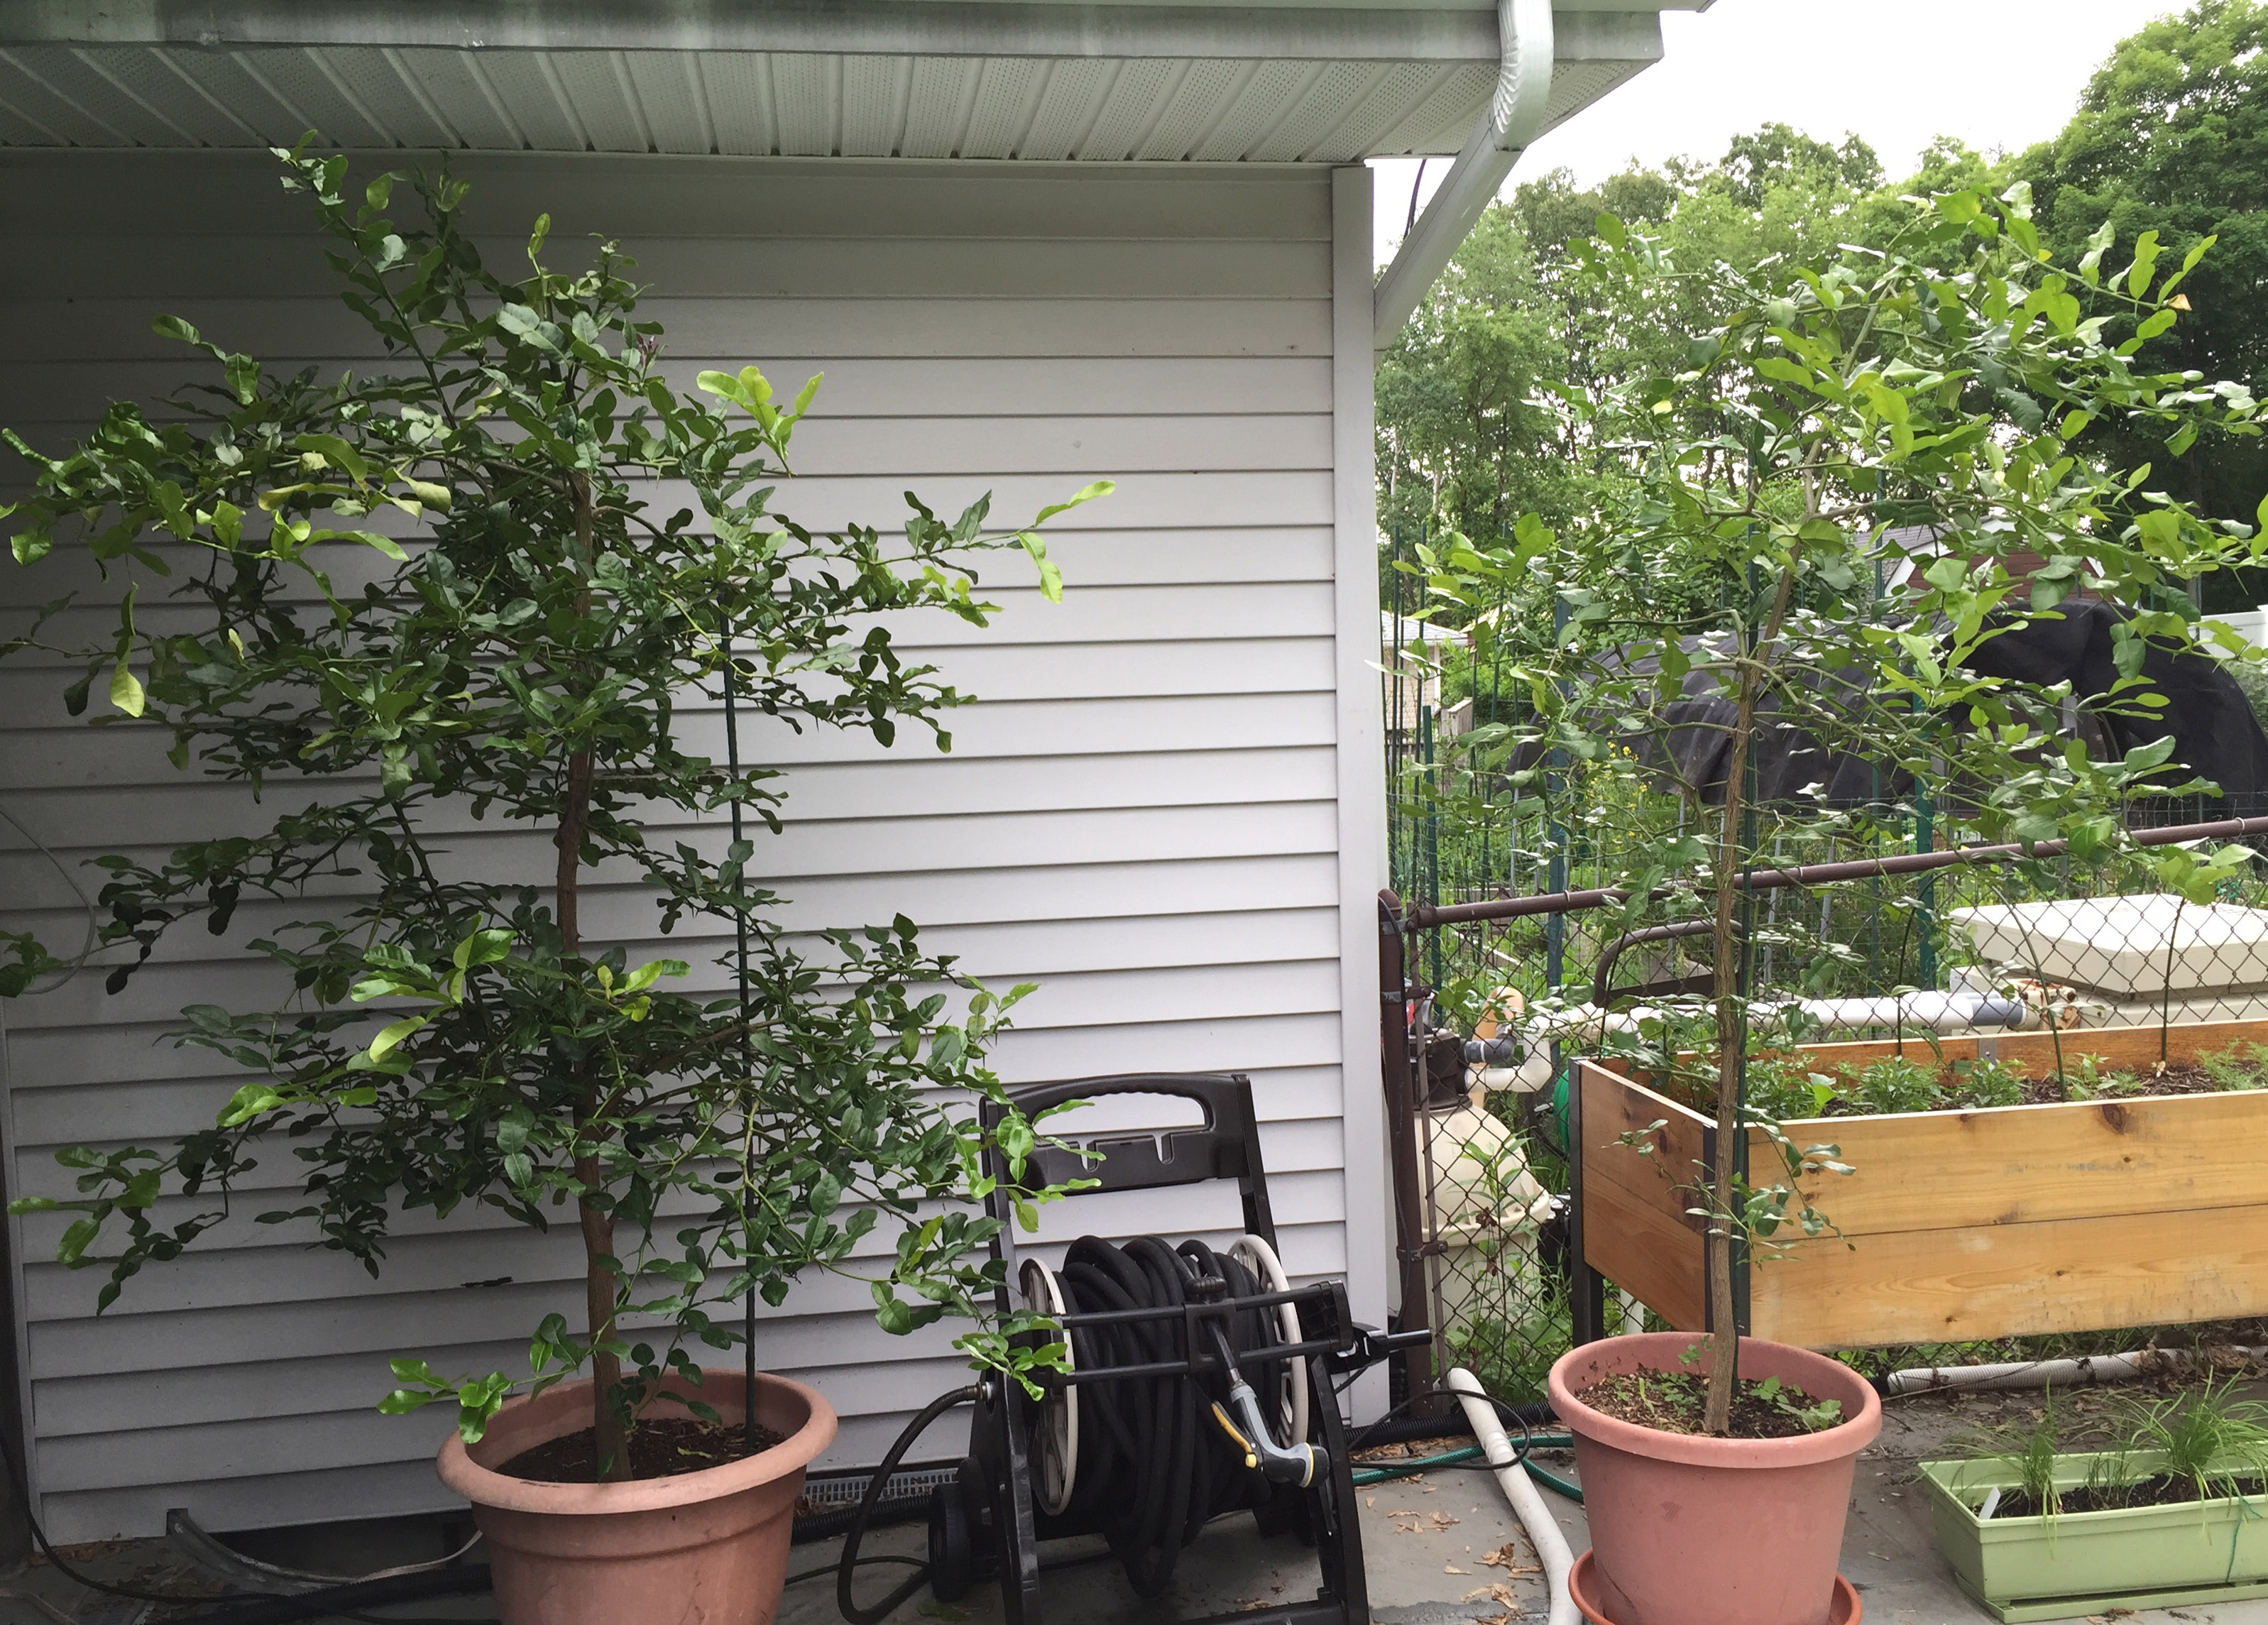 the left one is around 20 years old if i had let it grow naturally - Kaffir Lime Tree